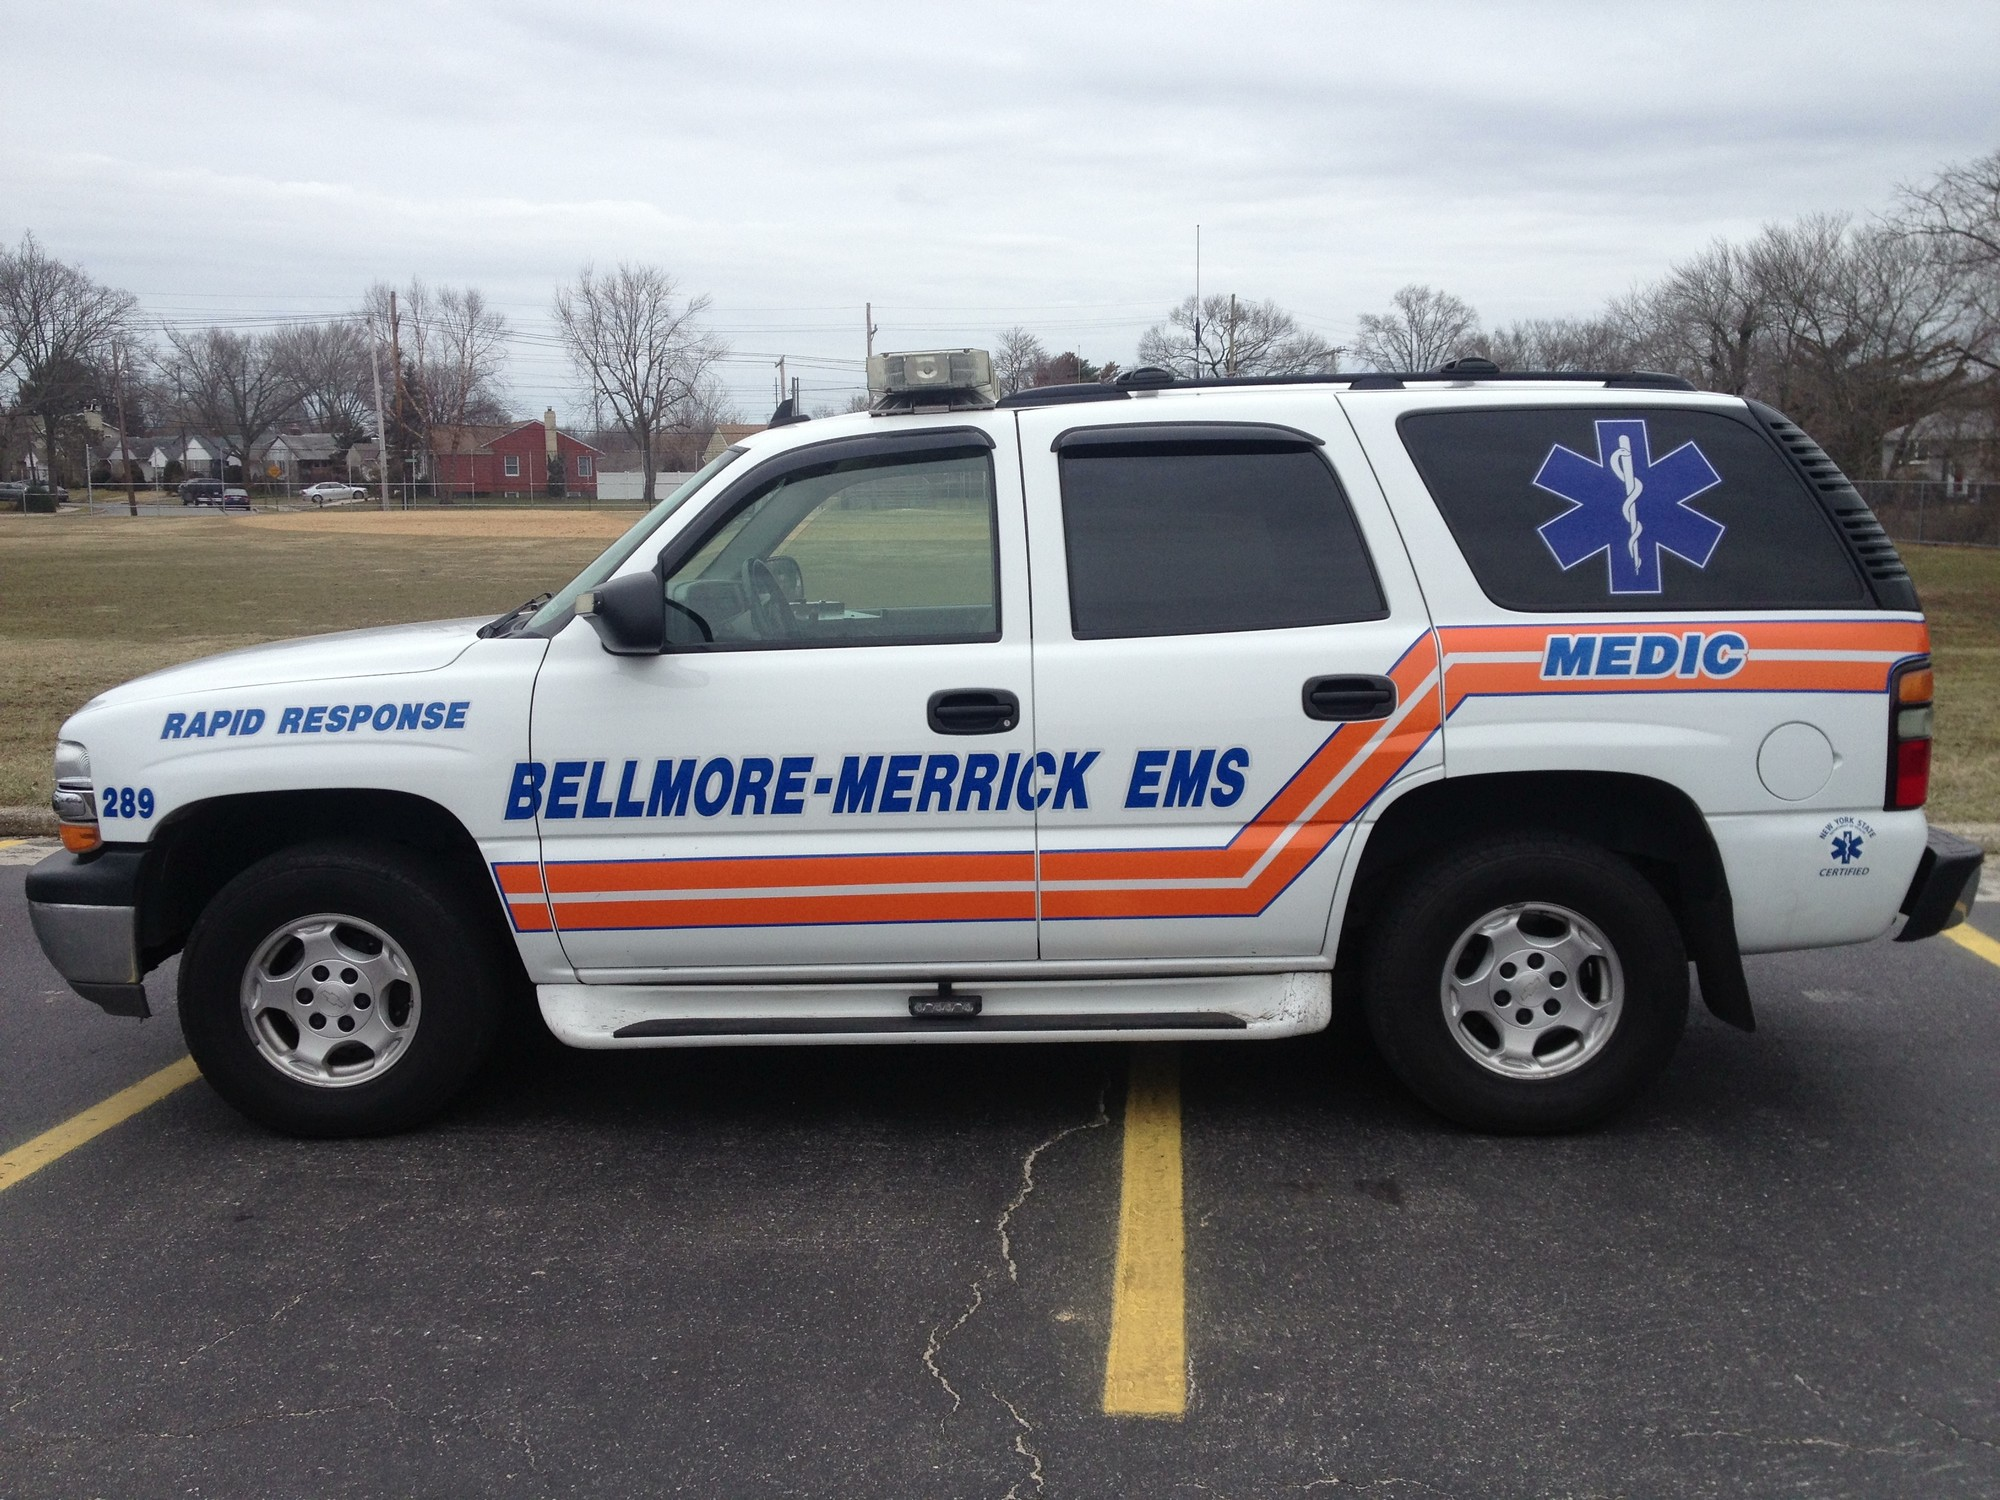 Emergency medical technicians from Bellmore-Merrick Emergency Medical Services are using this newly acquired rapid-response vehicle to rush to calls for help faster than they could with an ambulance.